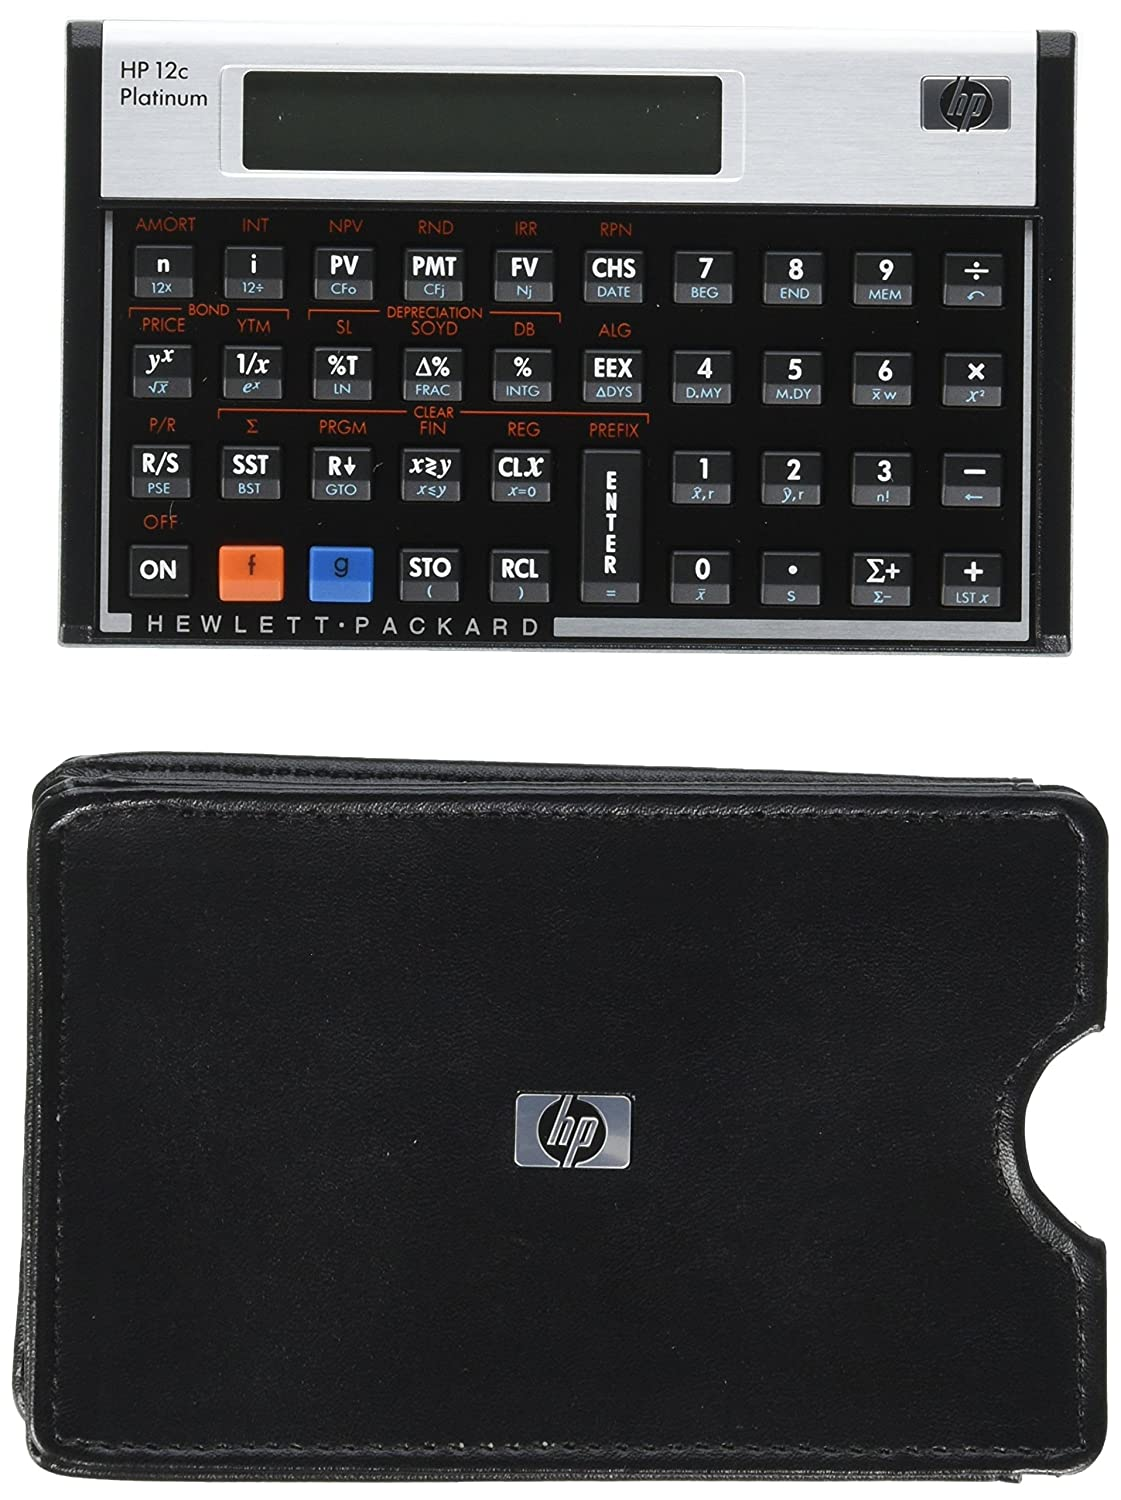 HP 12C Platinum Calculator Hewlett Packard MAIN-86591